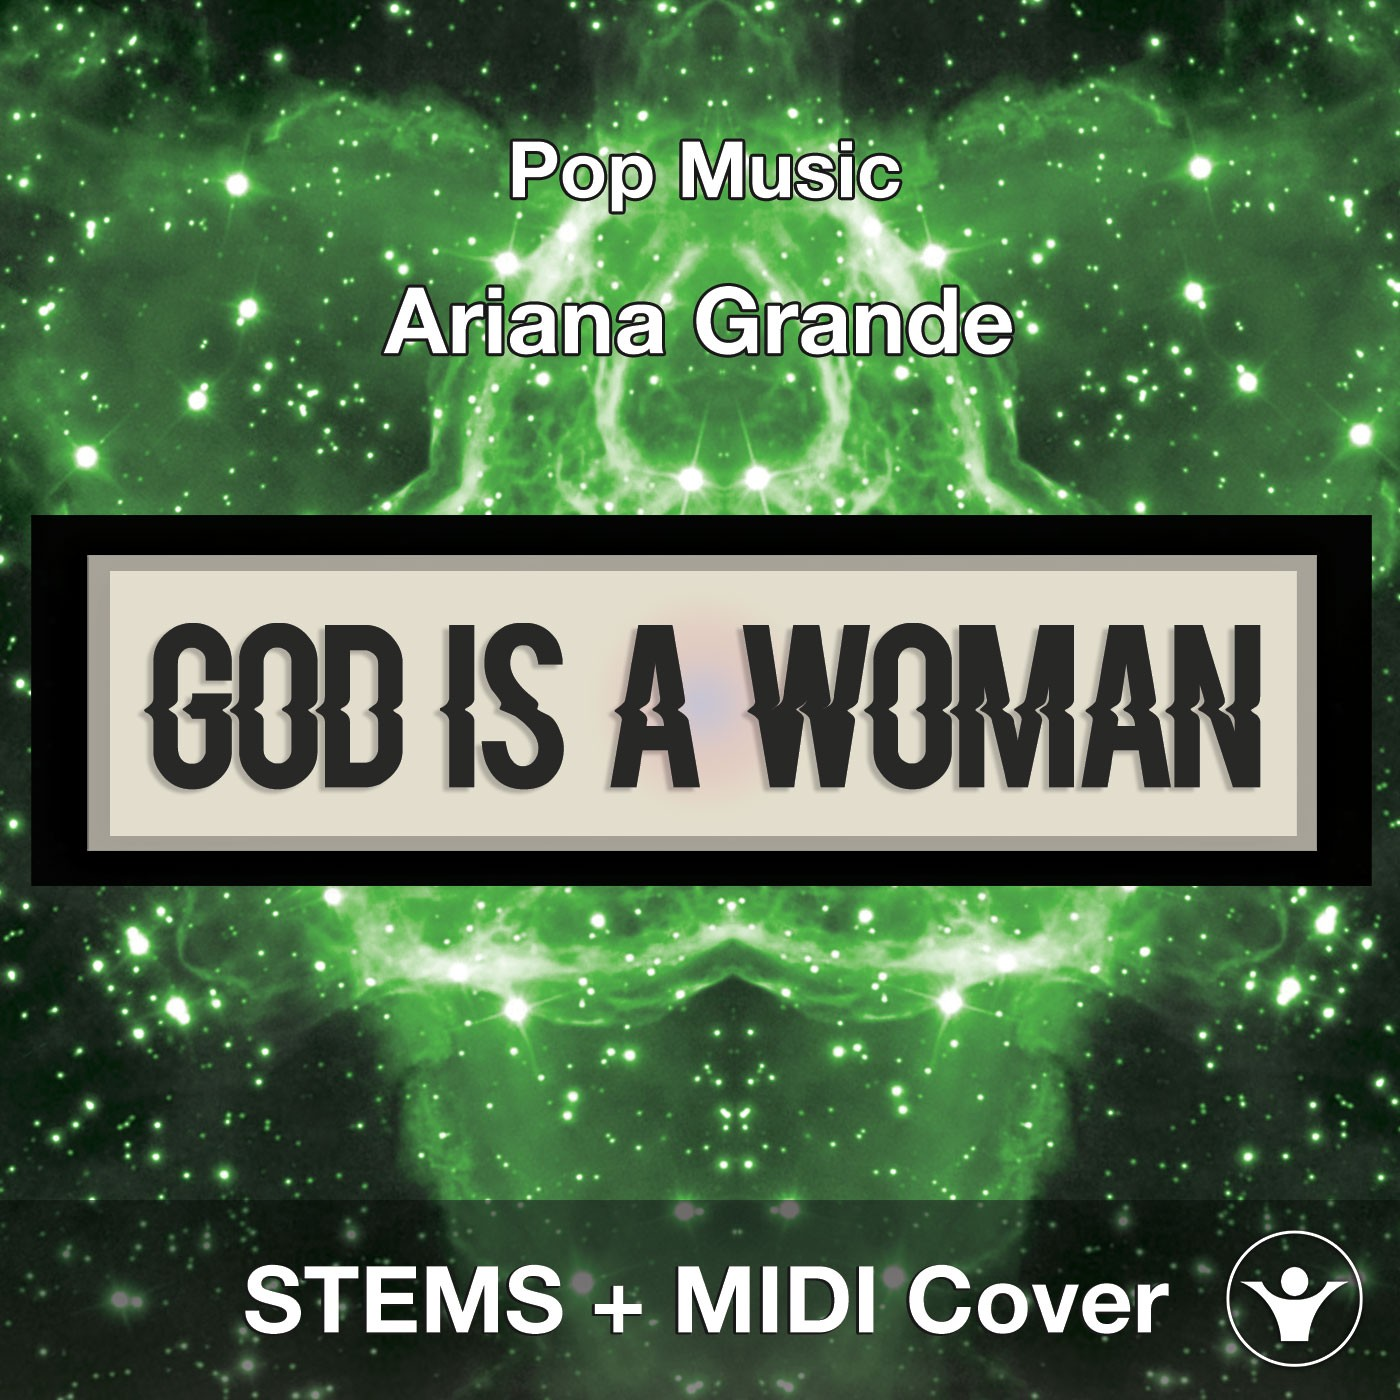 Ariana Grande - God is a woman - STEMS + MIDI Cover